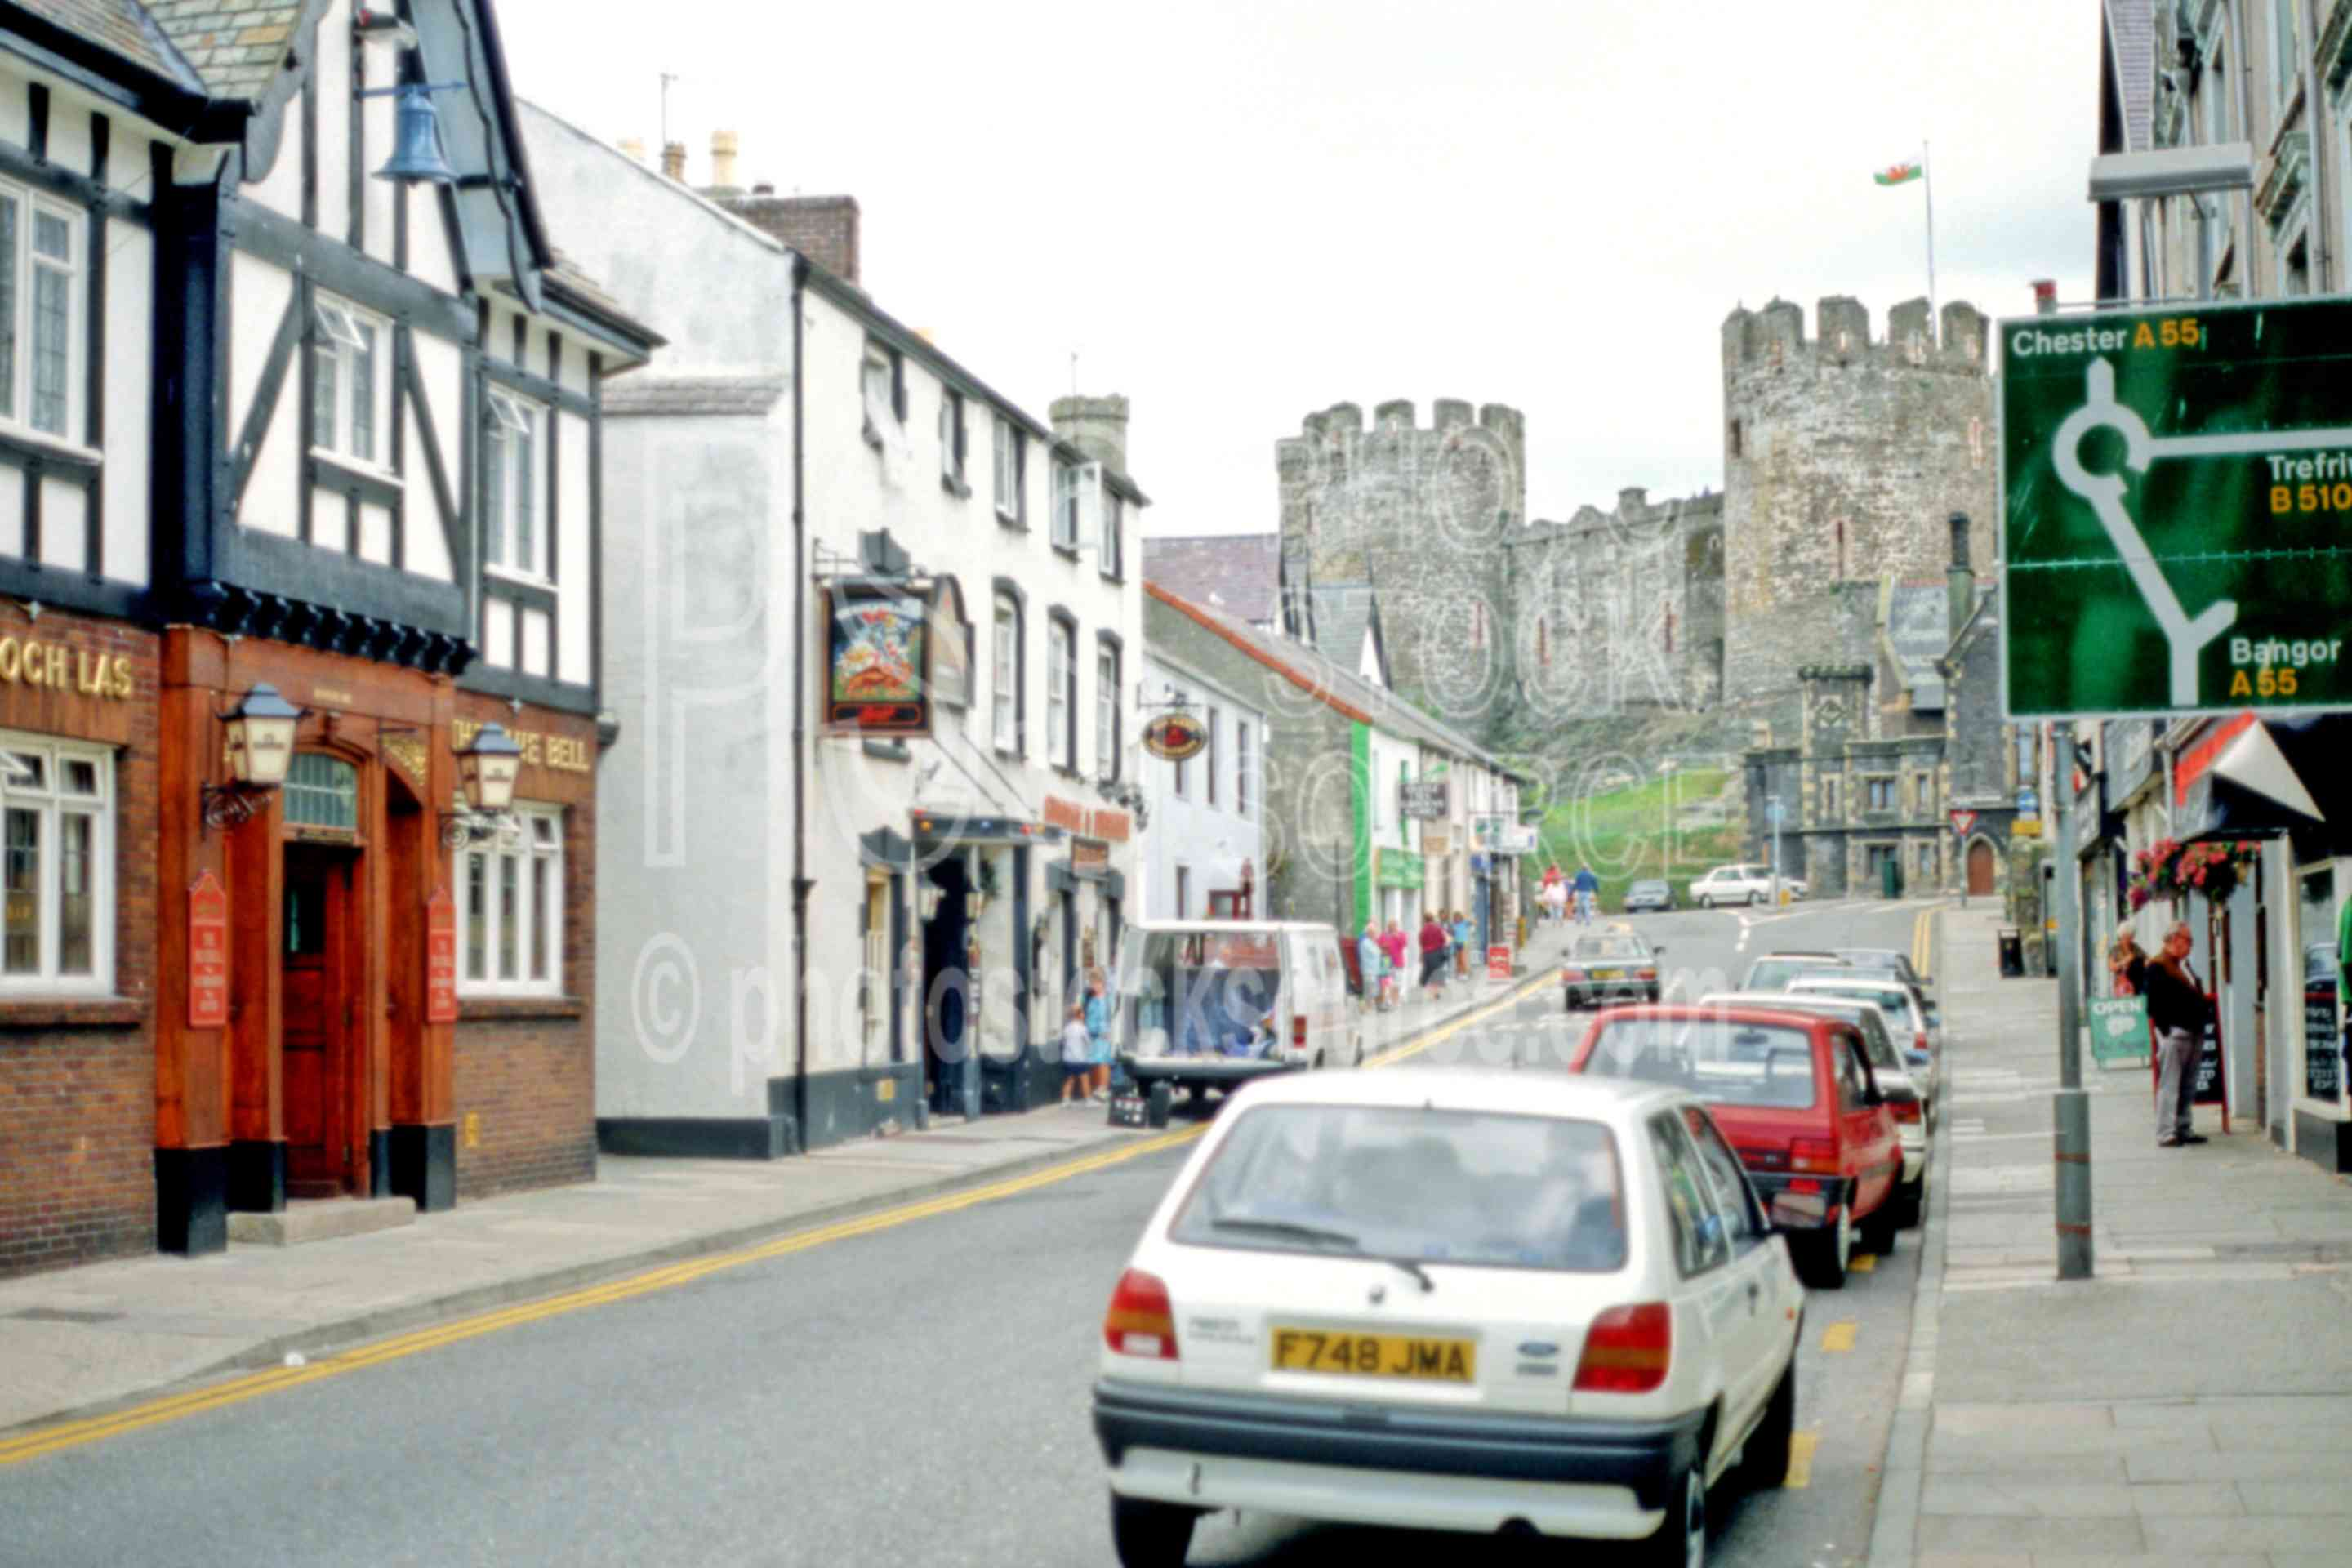 Conwy Castle,cars,castle,city,europe,street,cities,castles